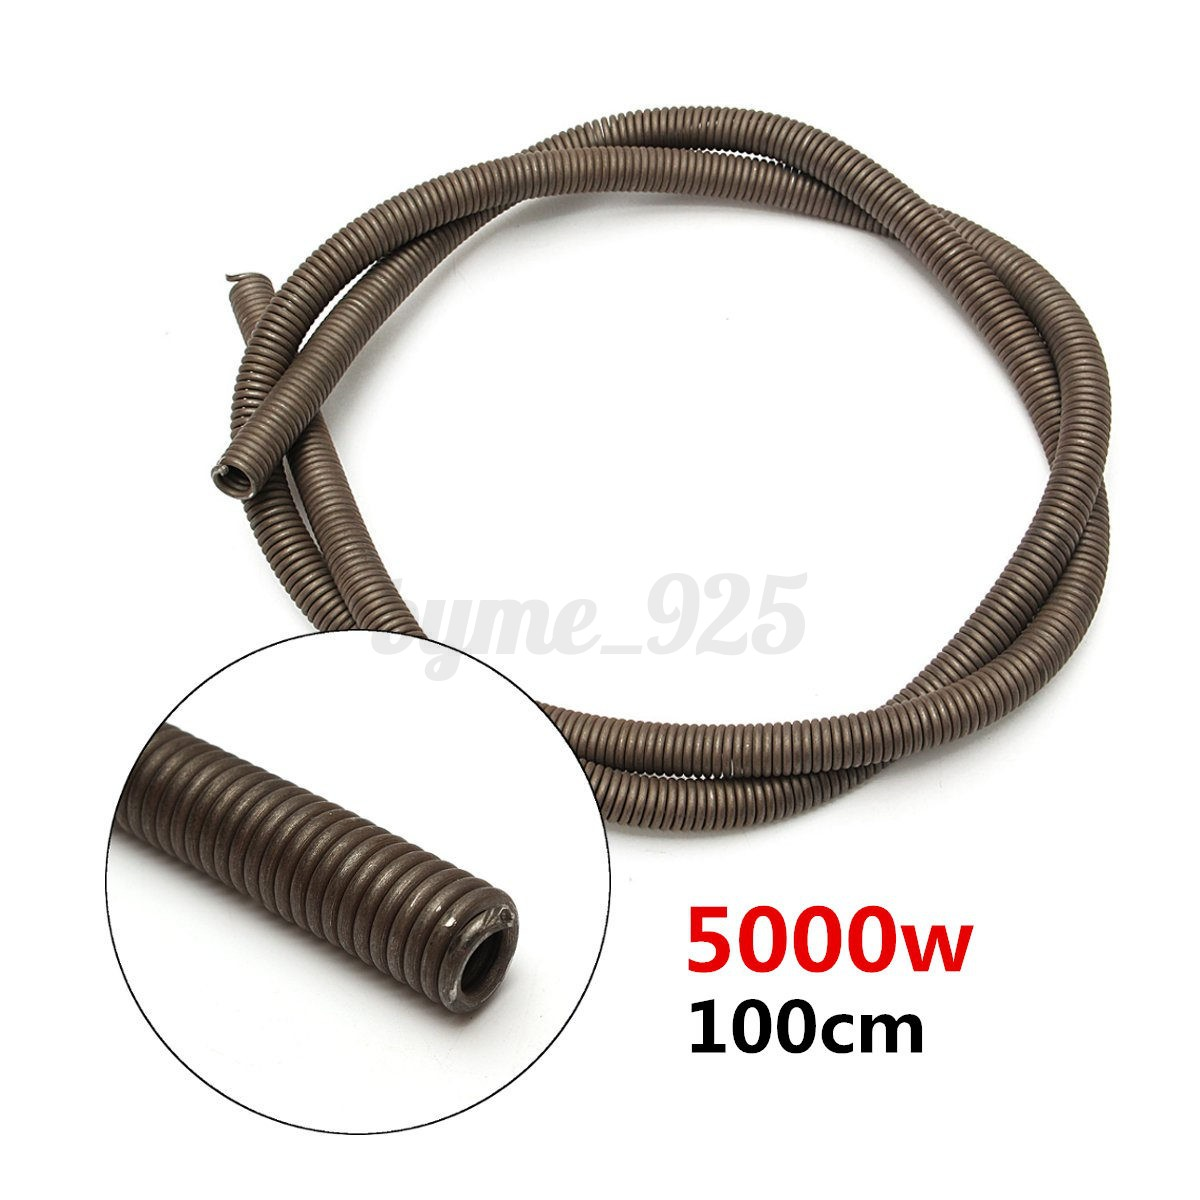 100cm = 1m Details About Kiln Furnace Heating Element Resistance Wire Tool 220v 5000w 100cm 1m 39 3